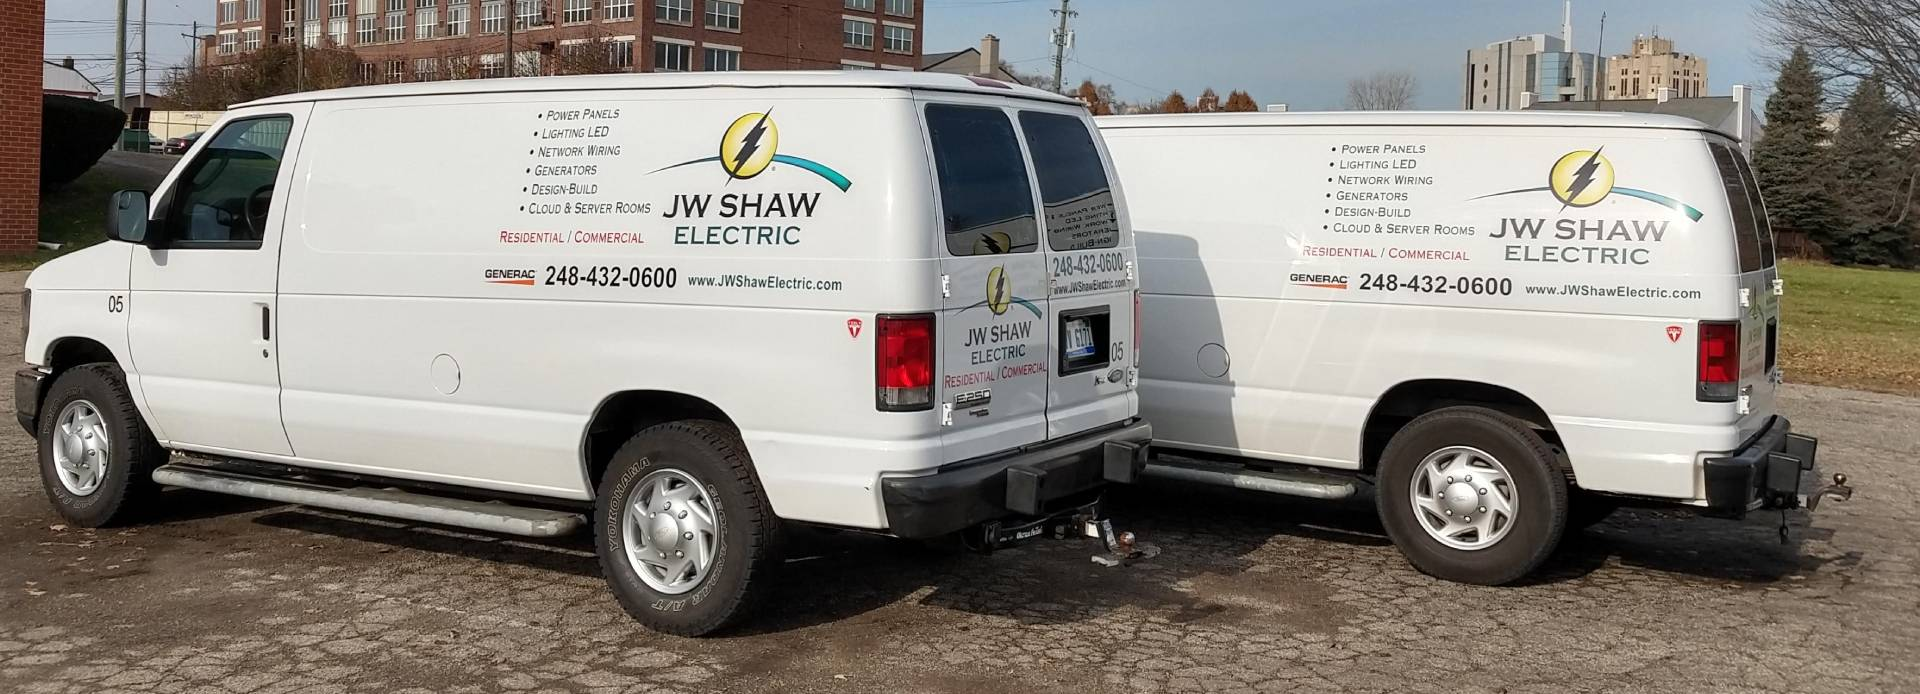 JW Shaw Electric.